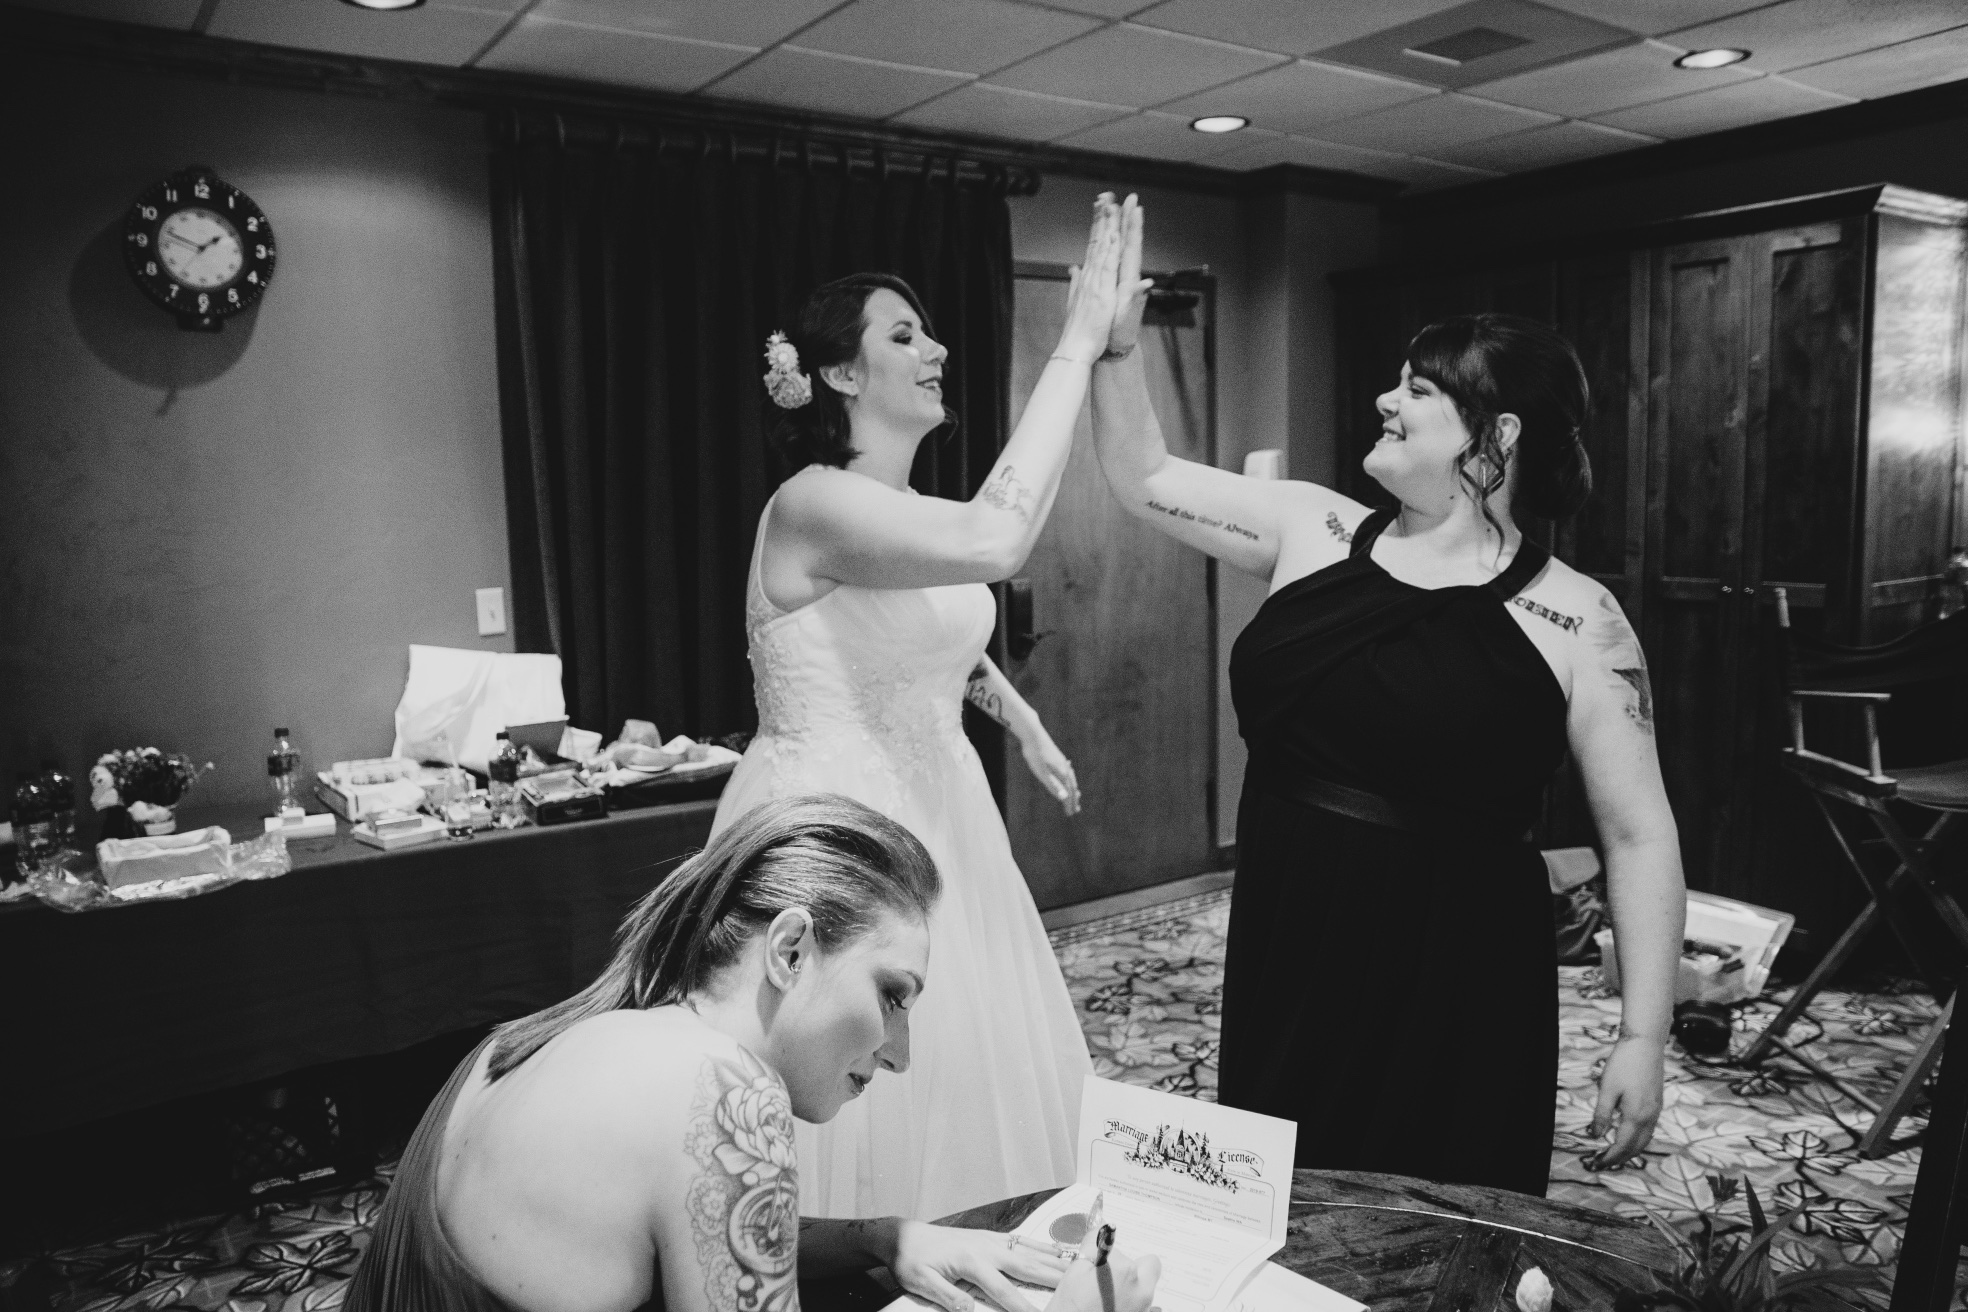 lindseyjanephoto_wedding0069.jpg